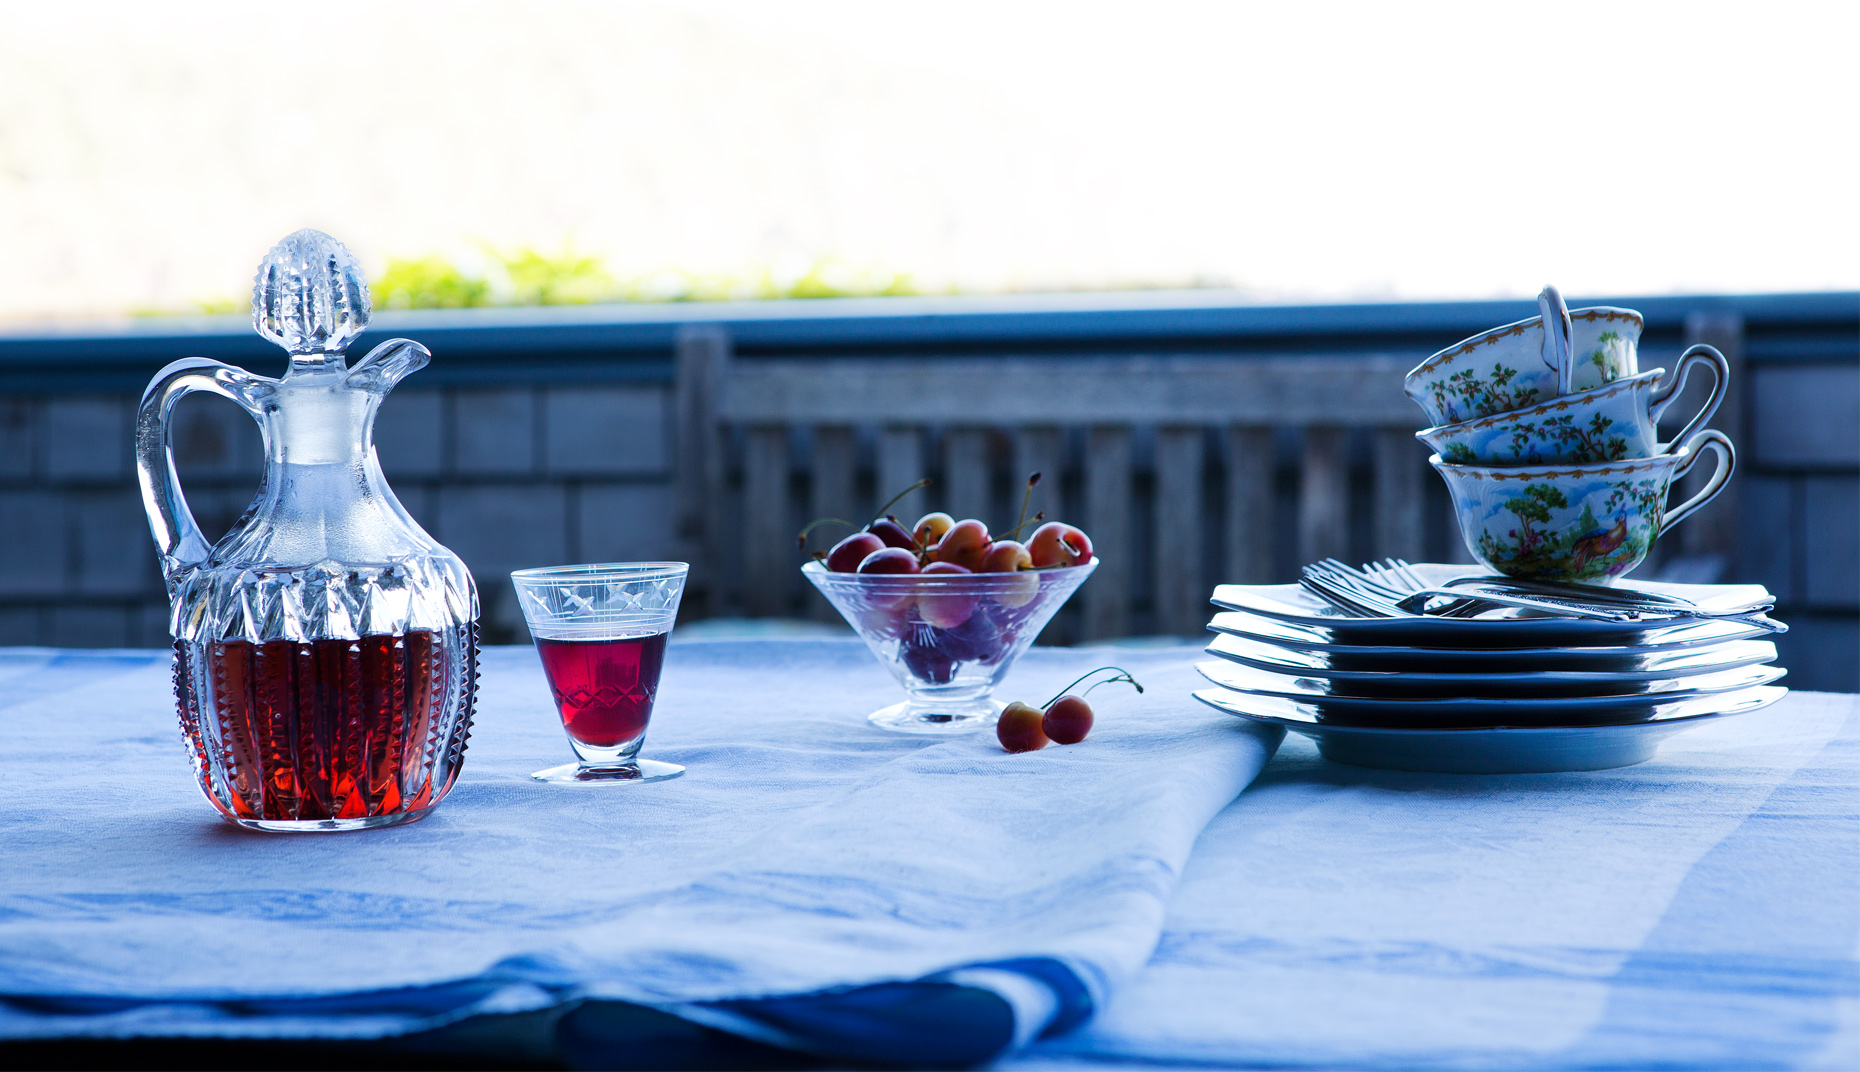 Sherry and Cherries, Natural Light, Lifestyle food, Rose Hodges Food Photography